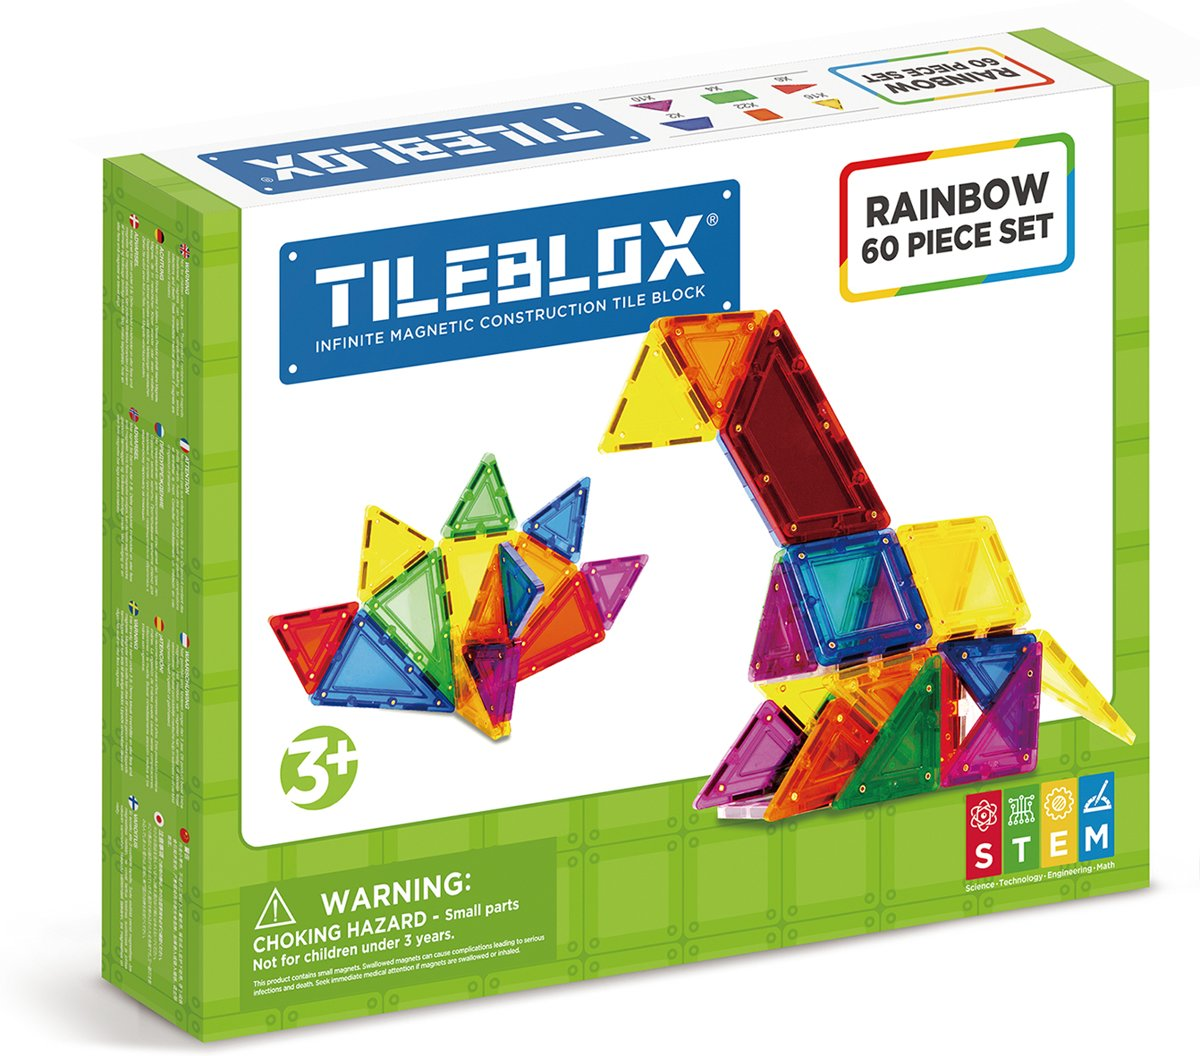 Tileblox - Rainbow 60pc Set